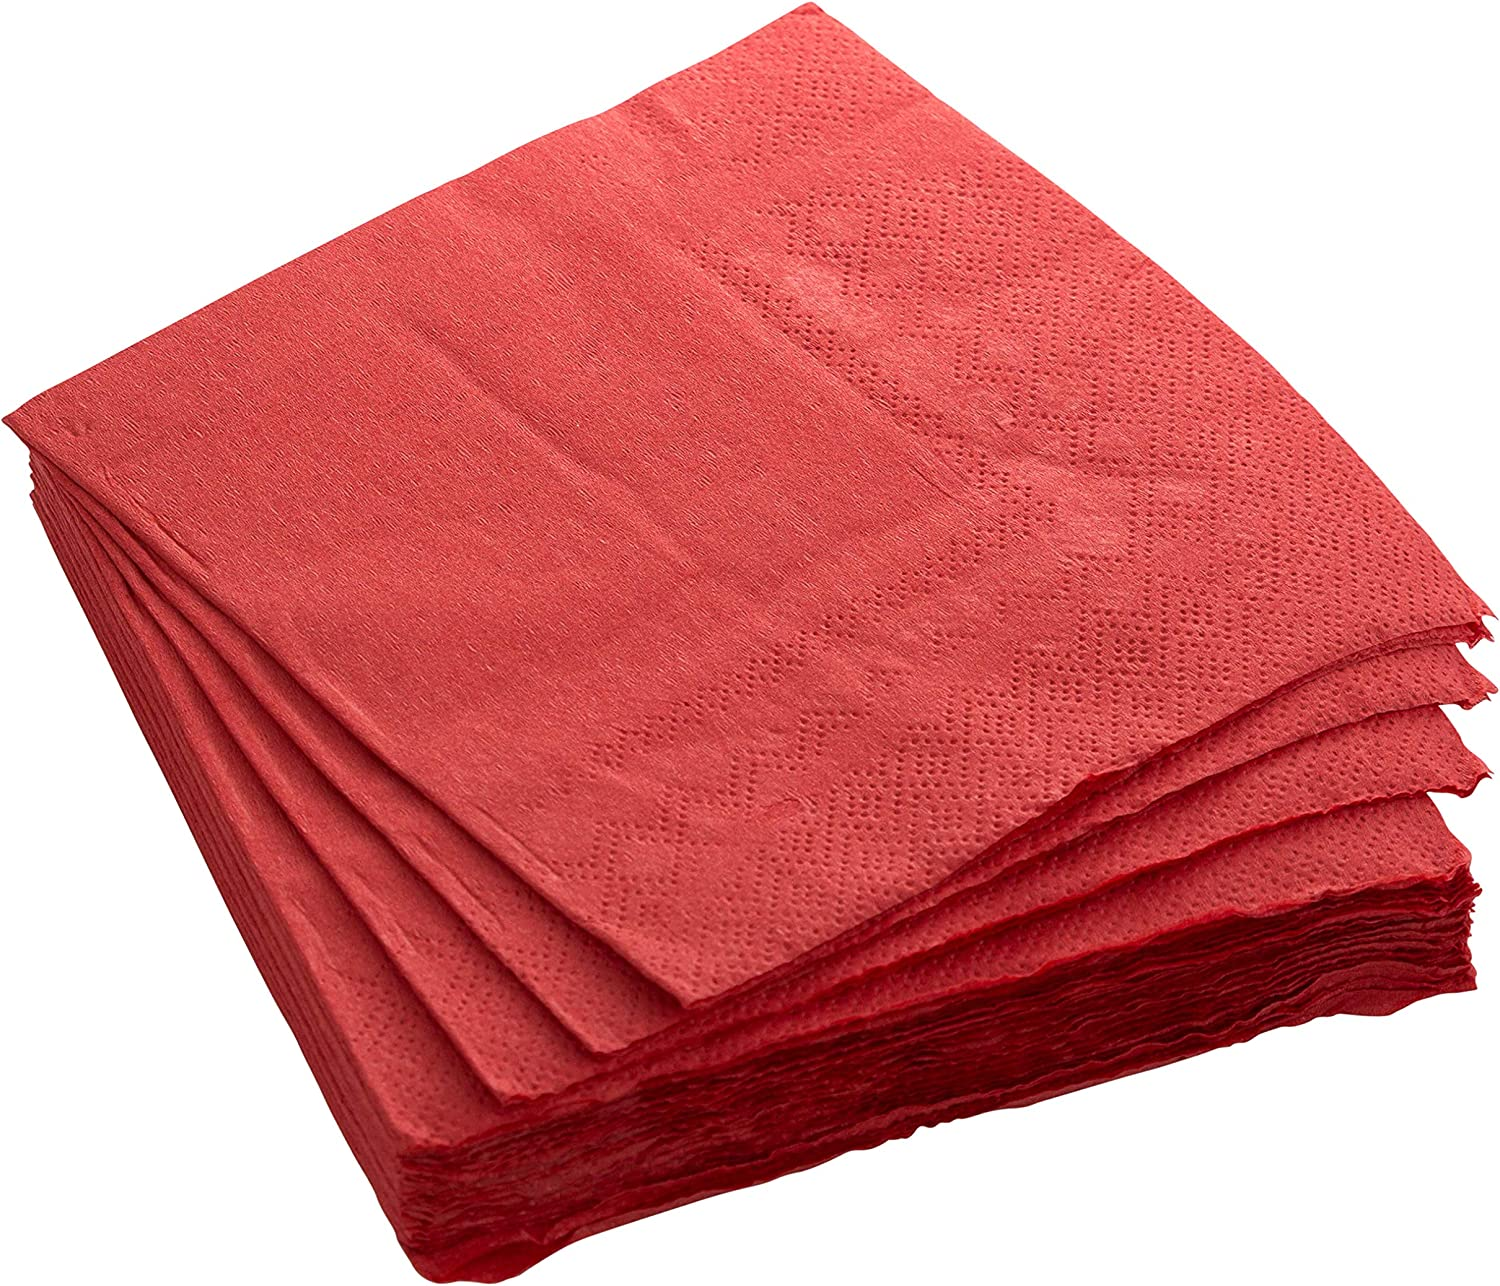 Exquisite 300 Pack of Beverage Paper Napkins The 2 Ply Party Napkins are Highly Absorbent and Available in a Wide Range of Vibrant Colors - Red Napkin.